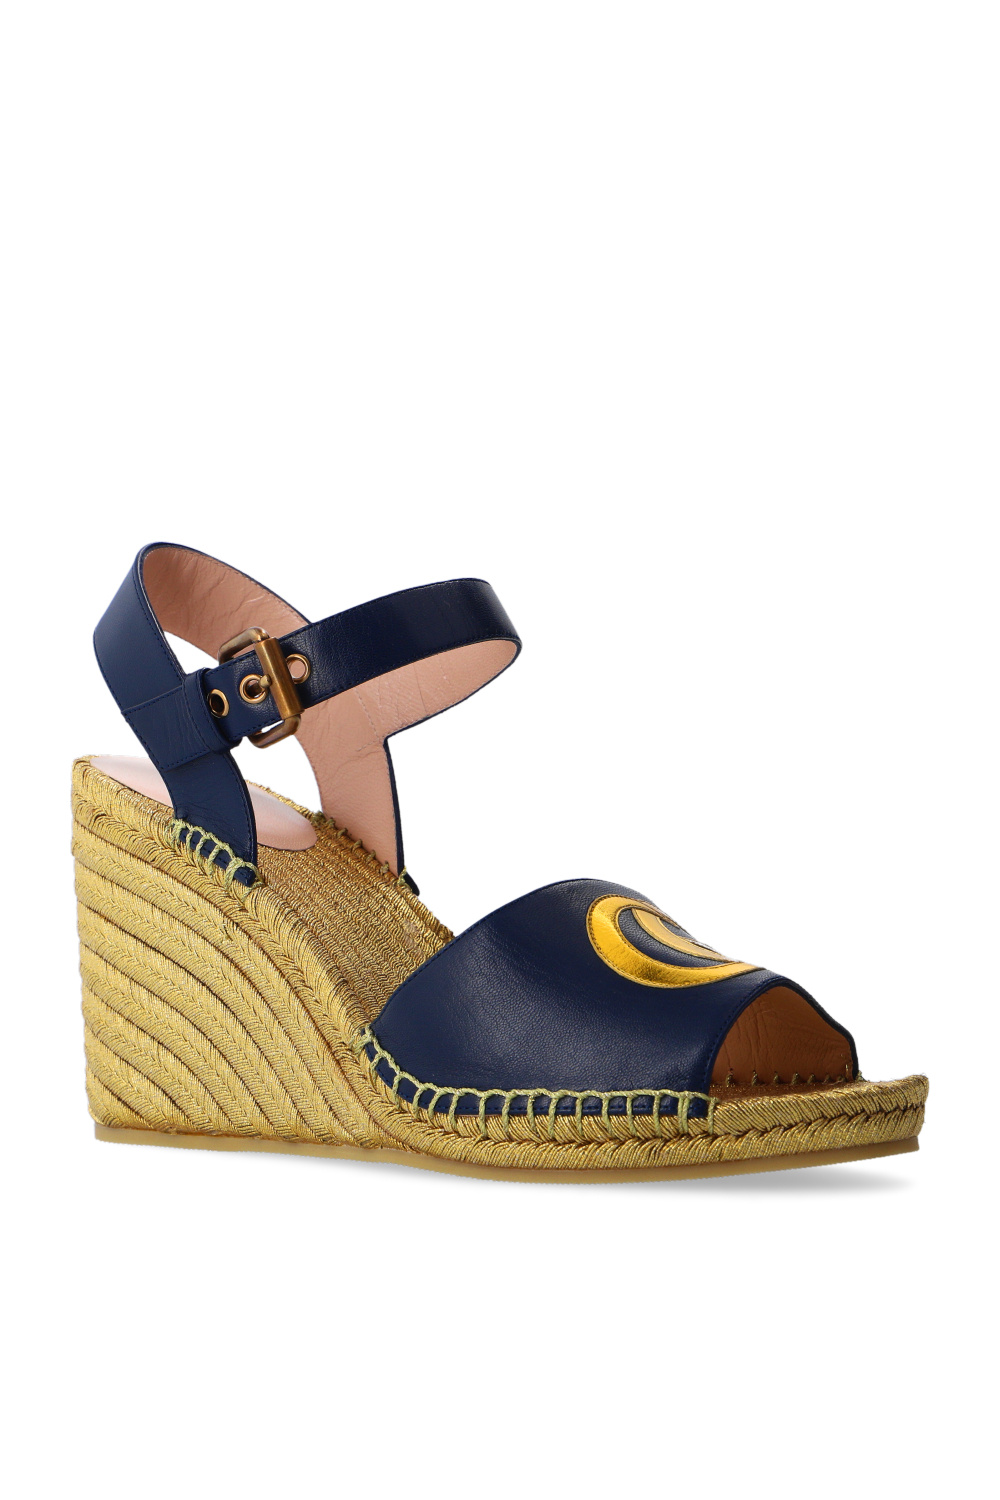 Gucci Wedge sandals with logo